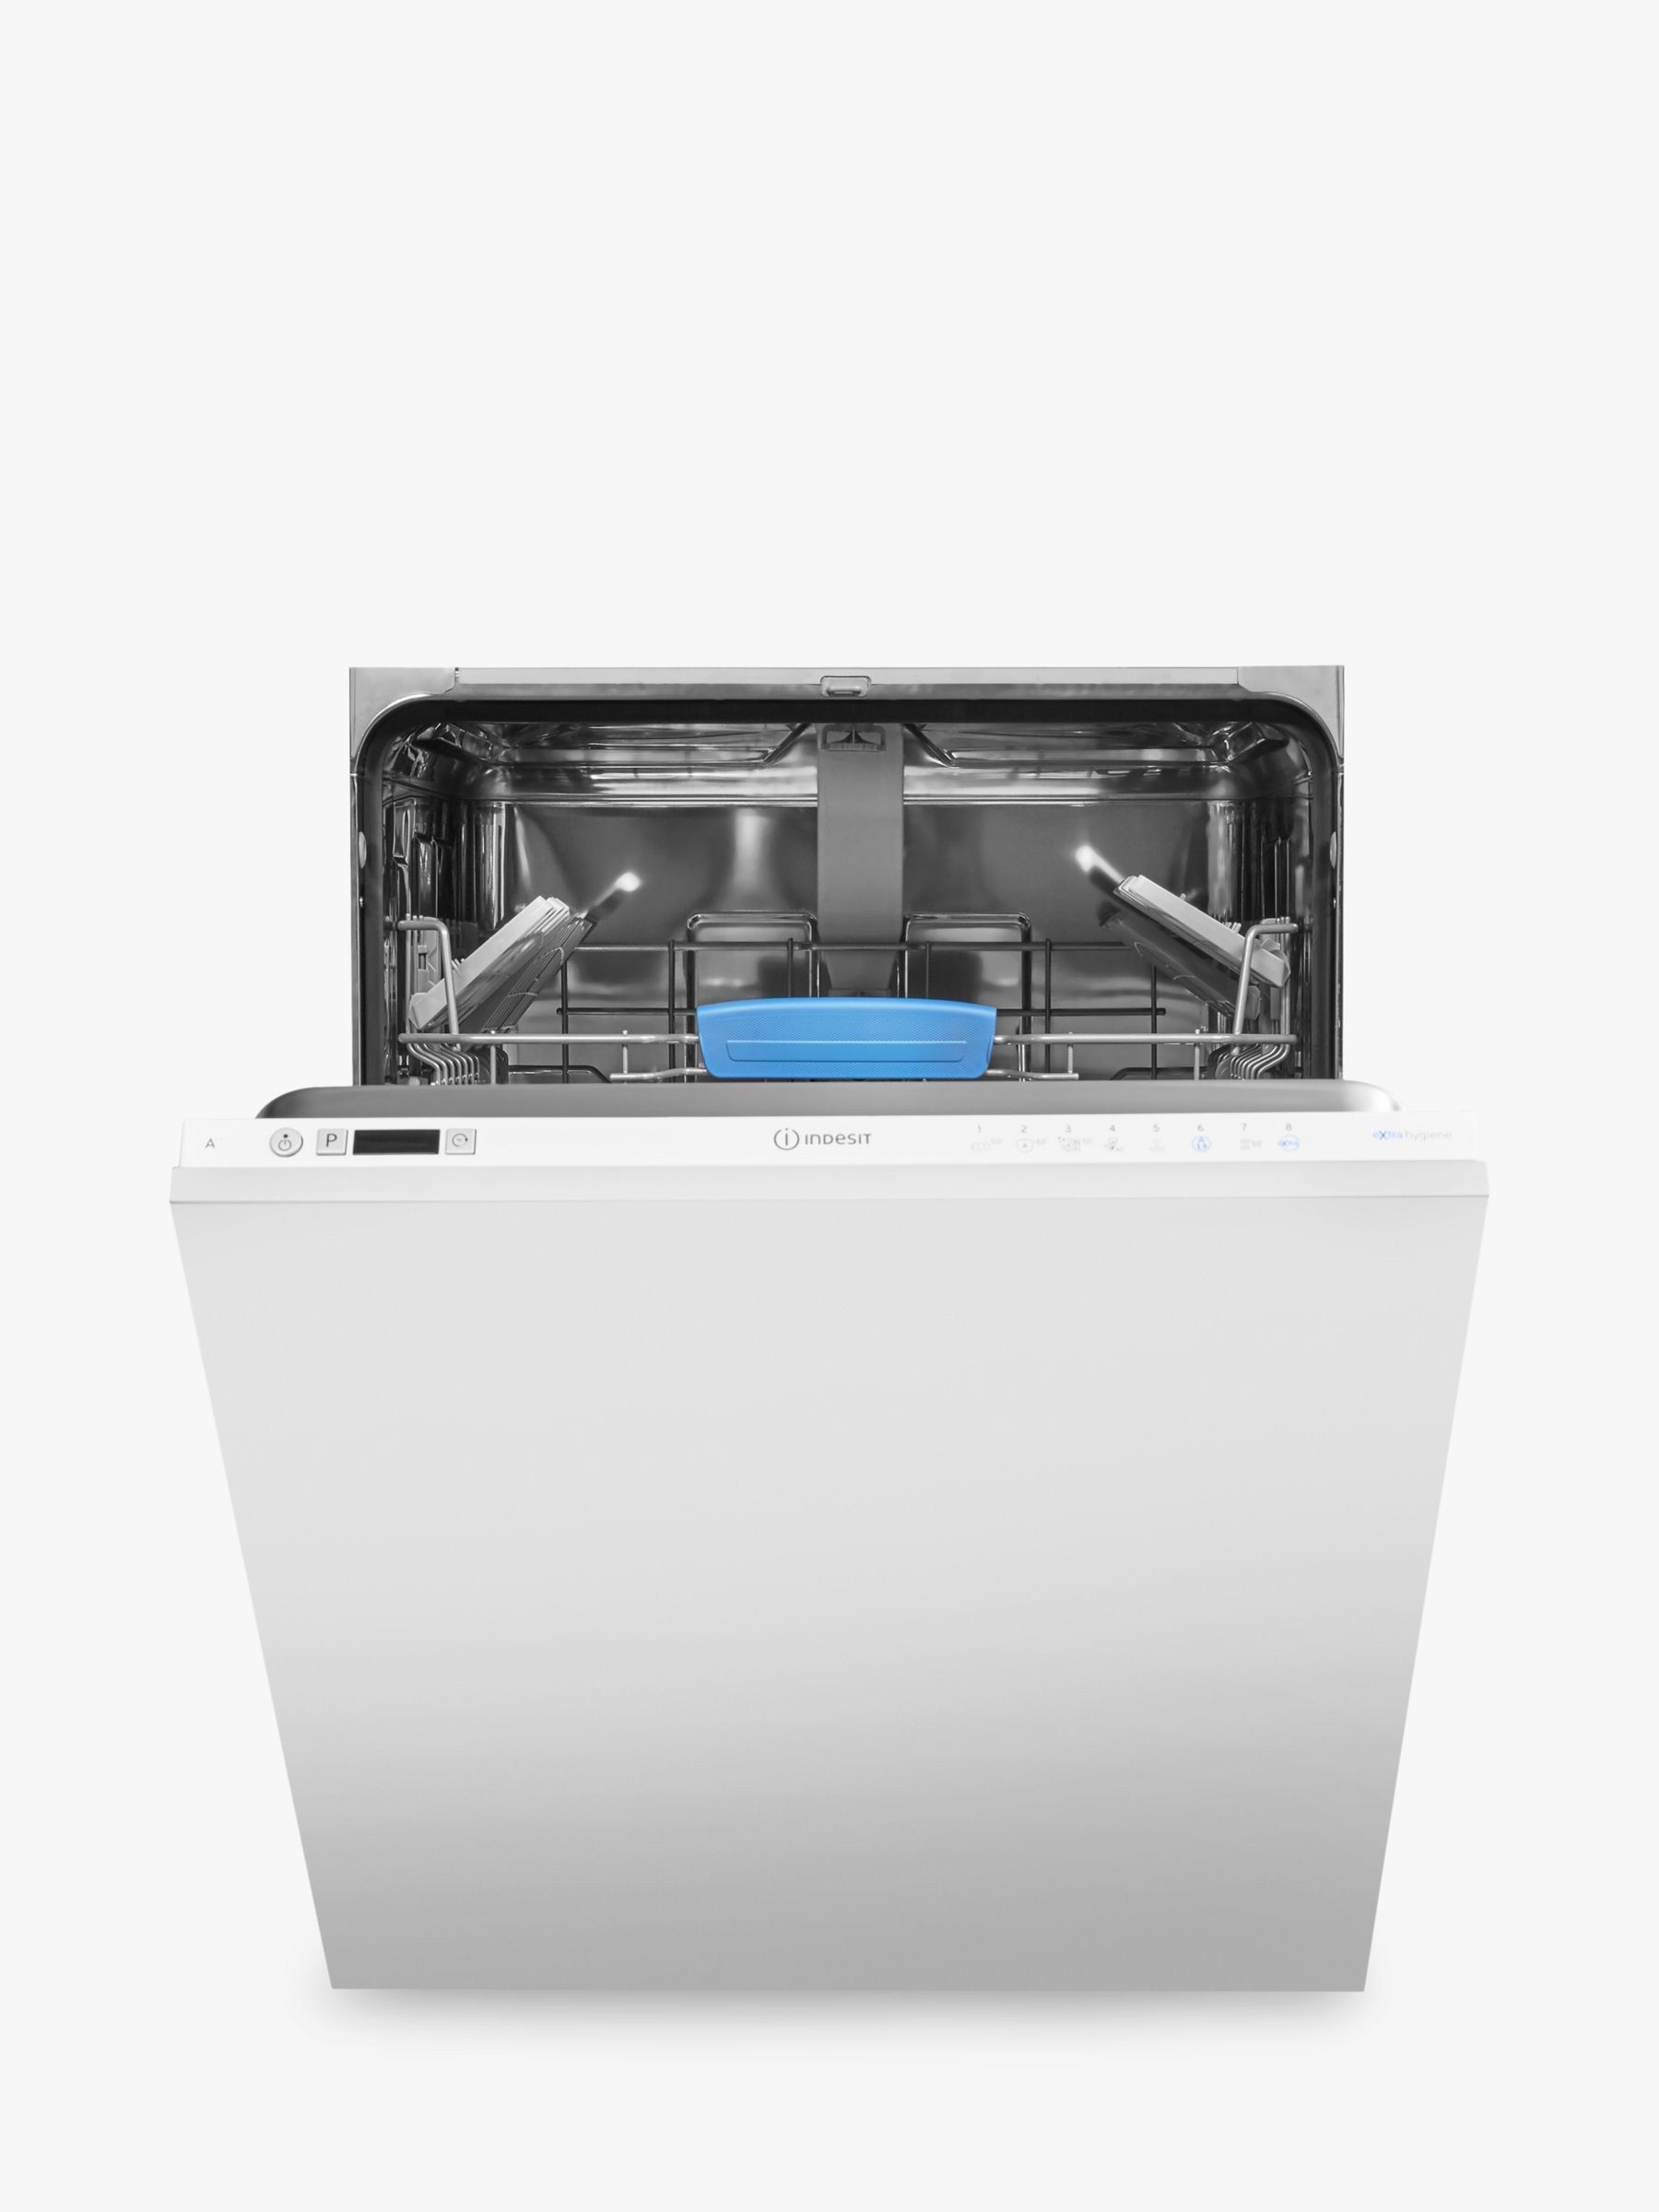 Indesit Indesit DIFP8T96 Integrated Dishwasher, White